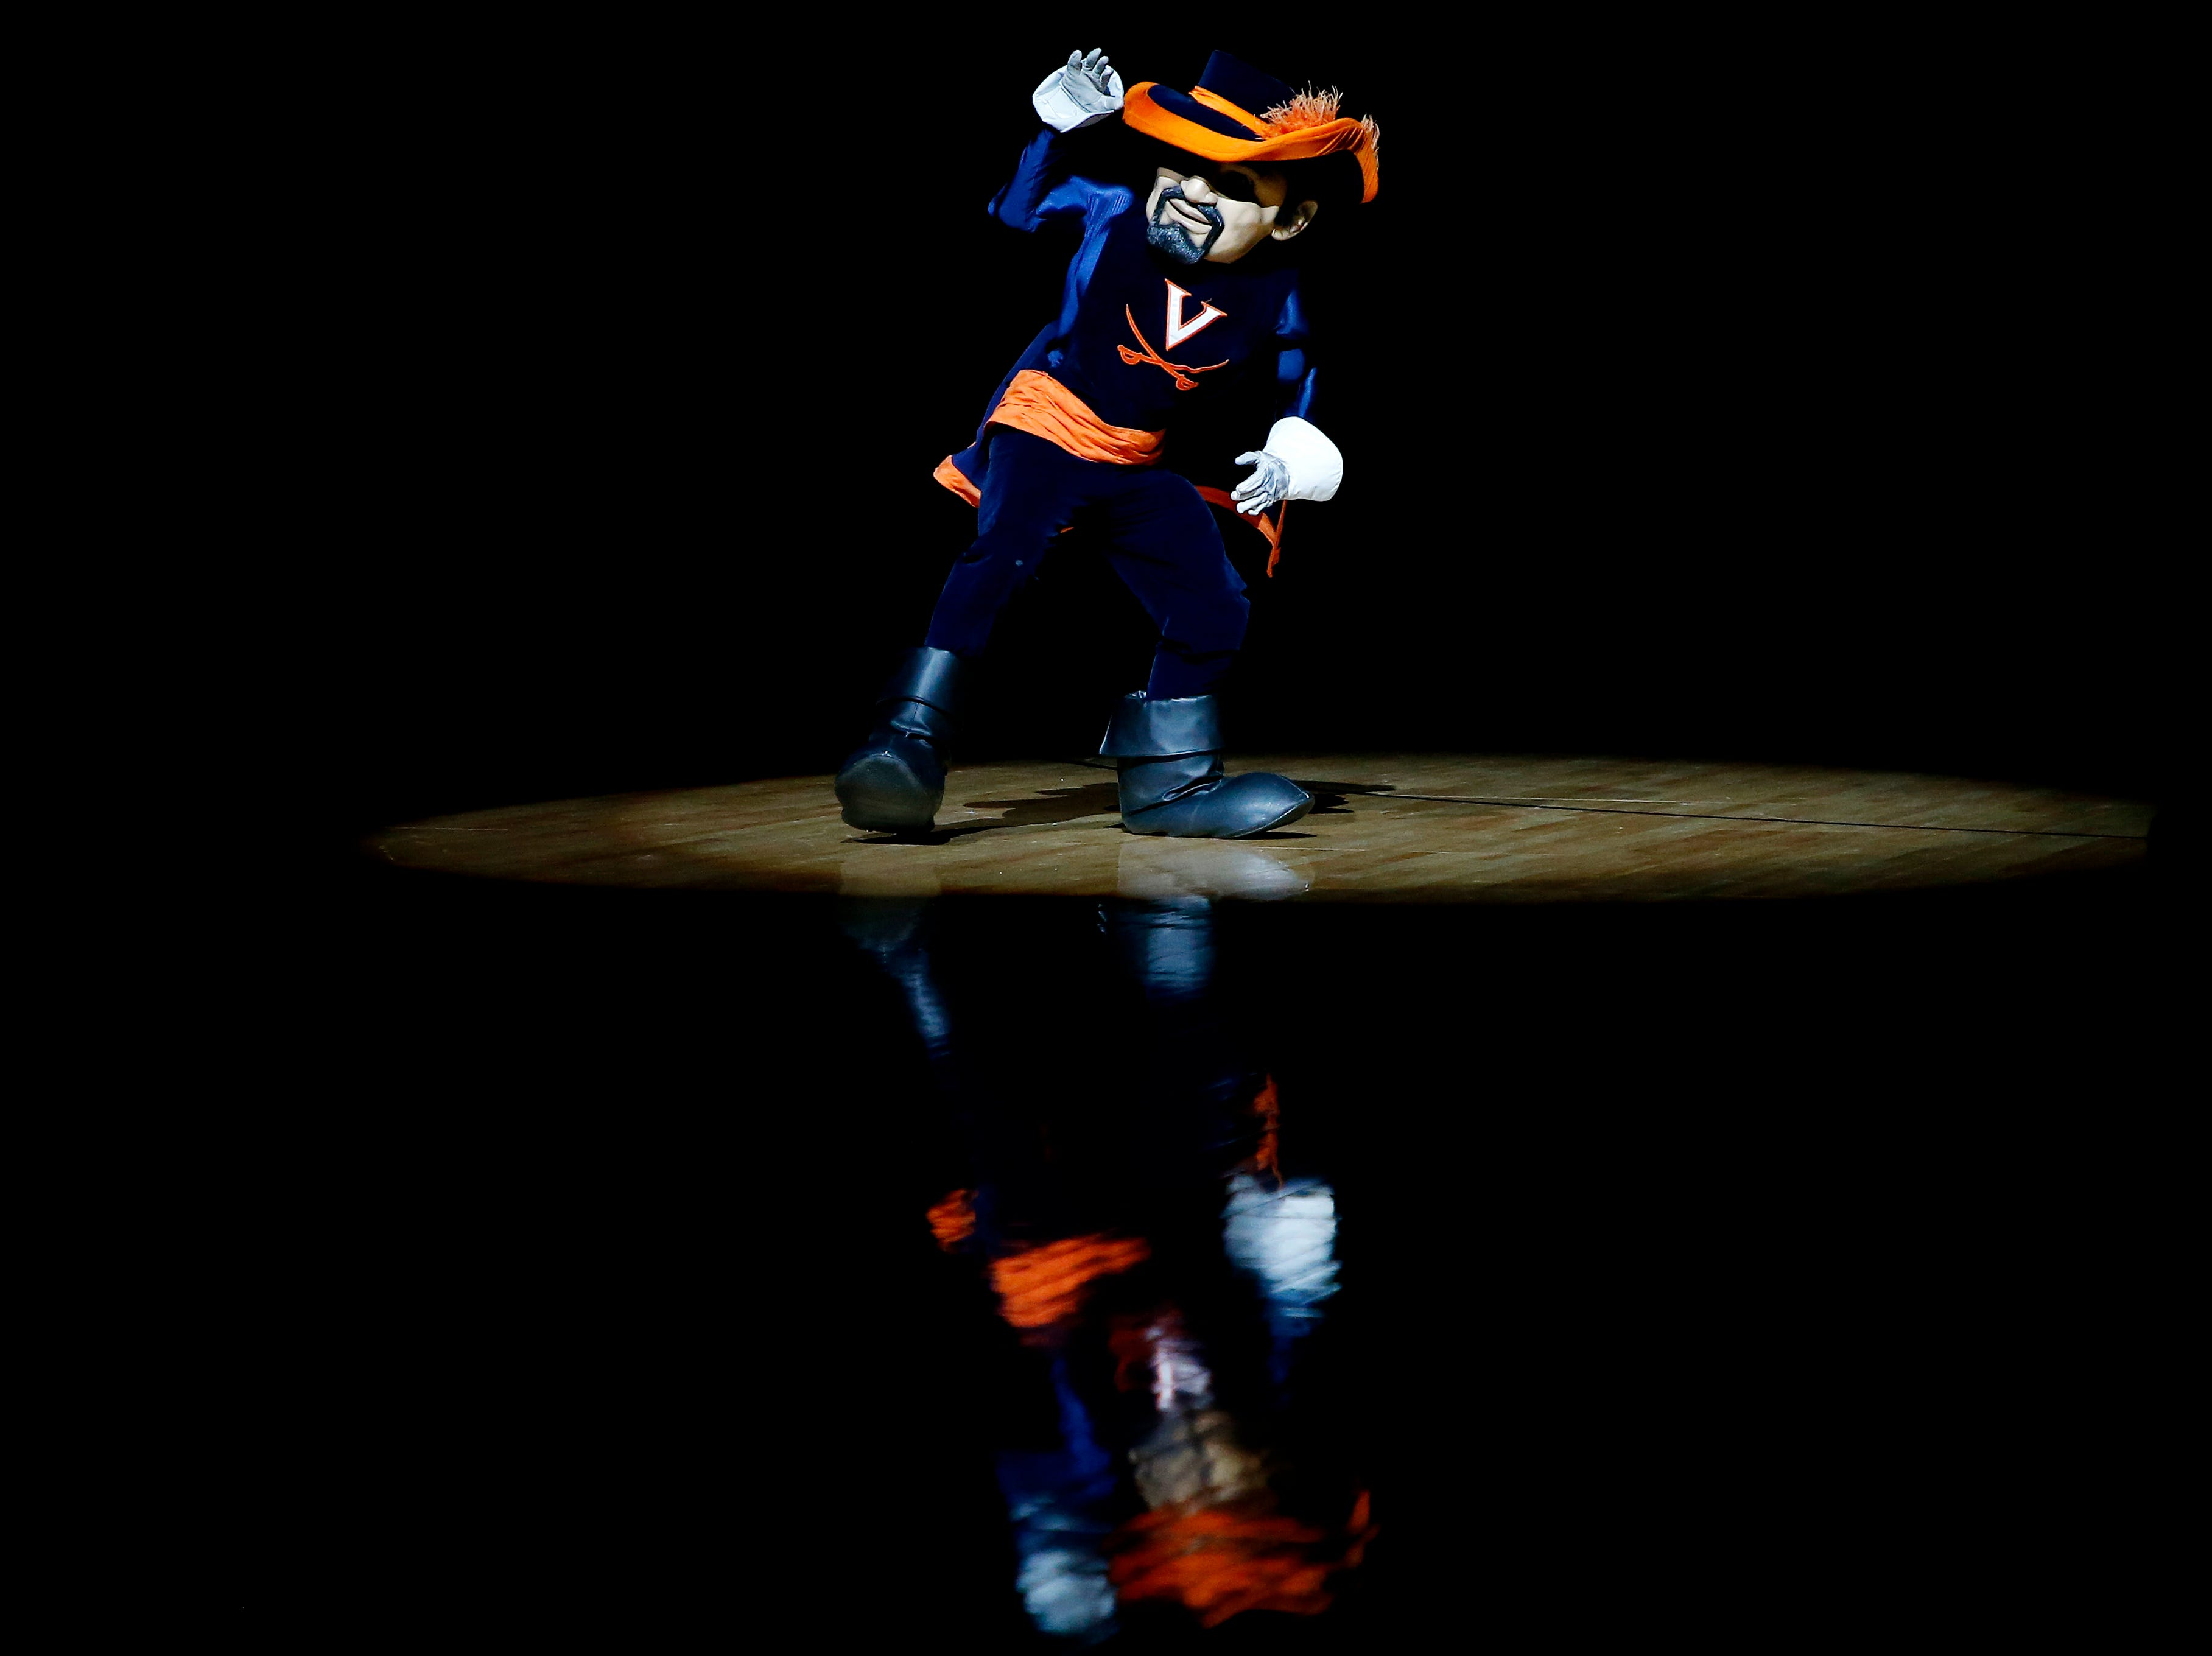 Jan 5, 2019; Charlottesville, VA, USA; Virginia Cavaliers mascot Can Man dances on the court prior to the Cavaliers' game against the Florida State Seminoles at John Paul Jones Arena. Mandatory Credit: Geoff Burke-USA TODAY Sports